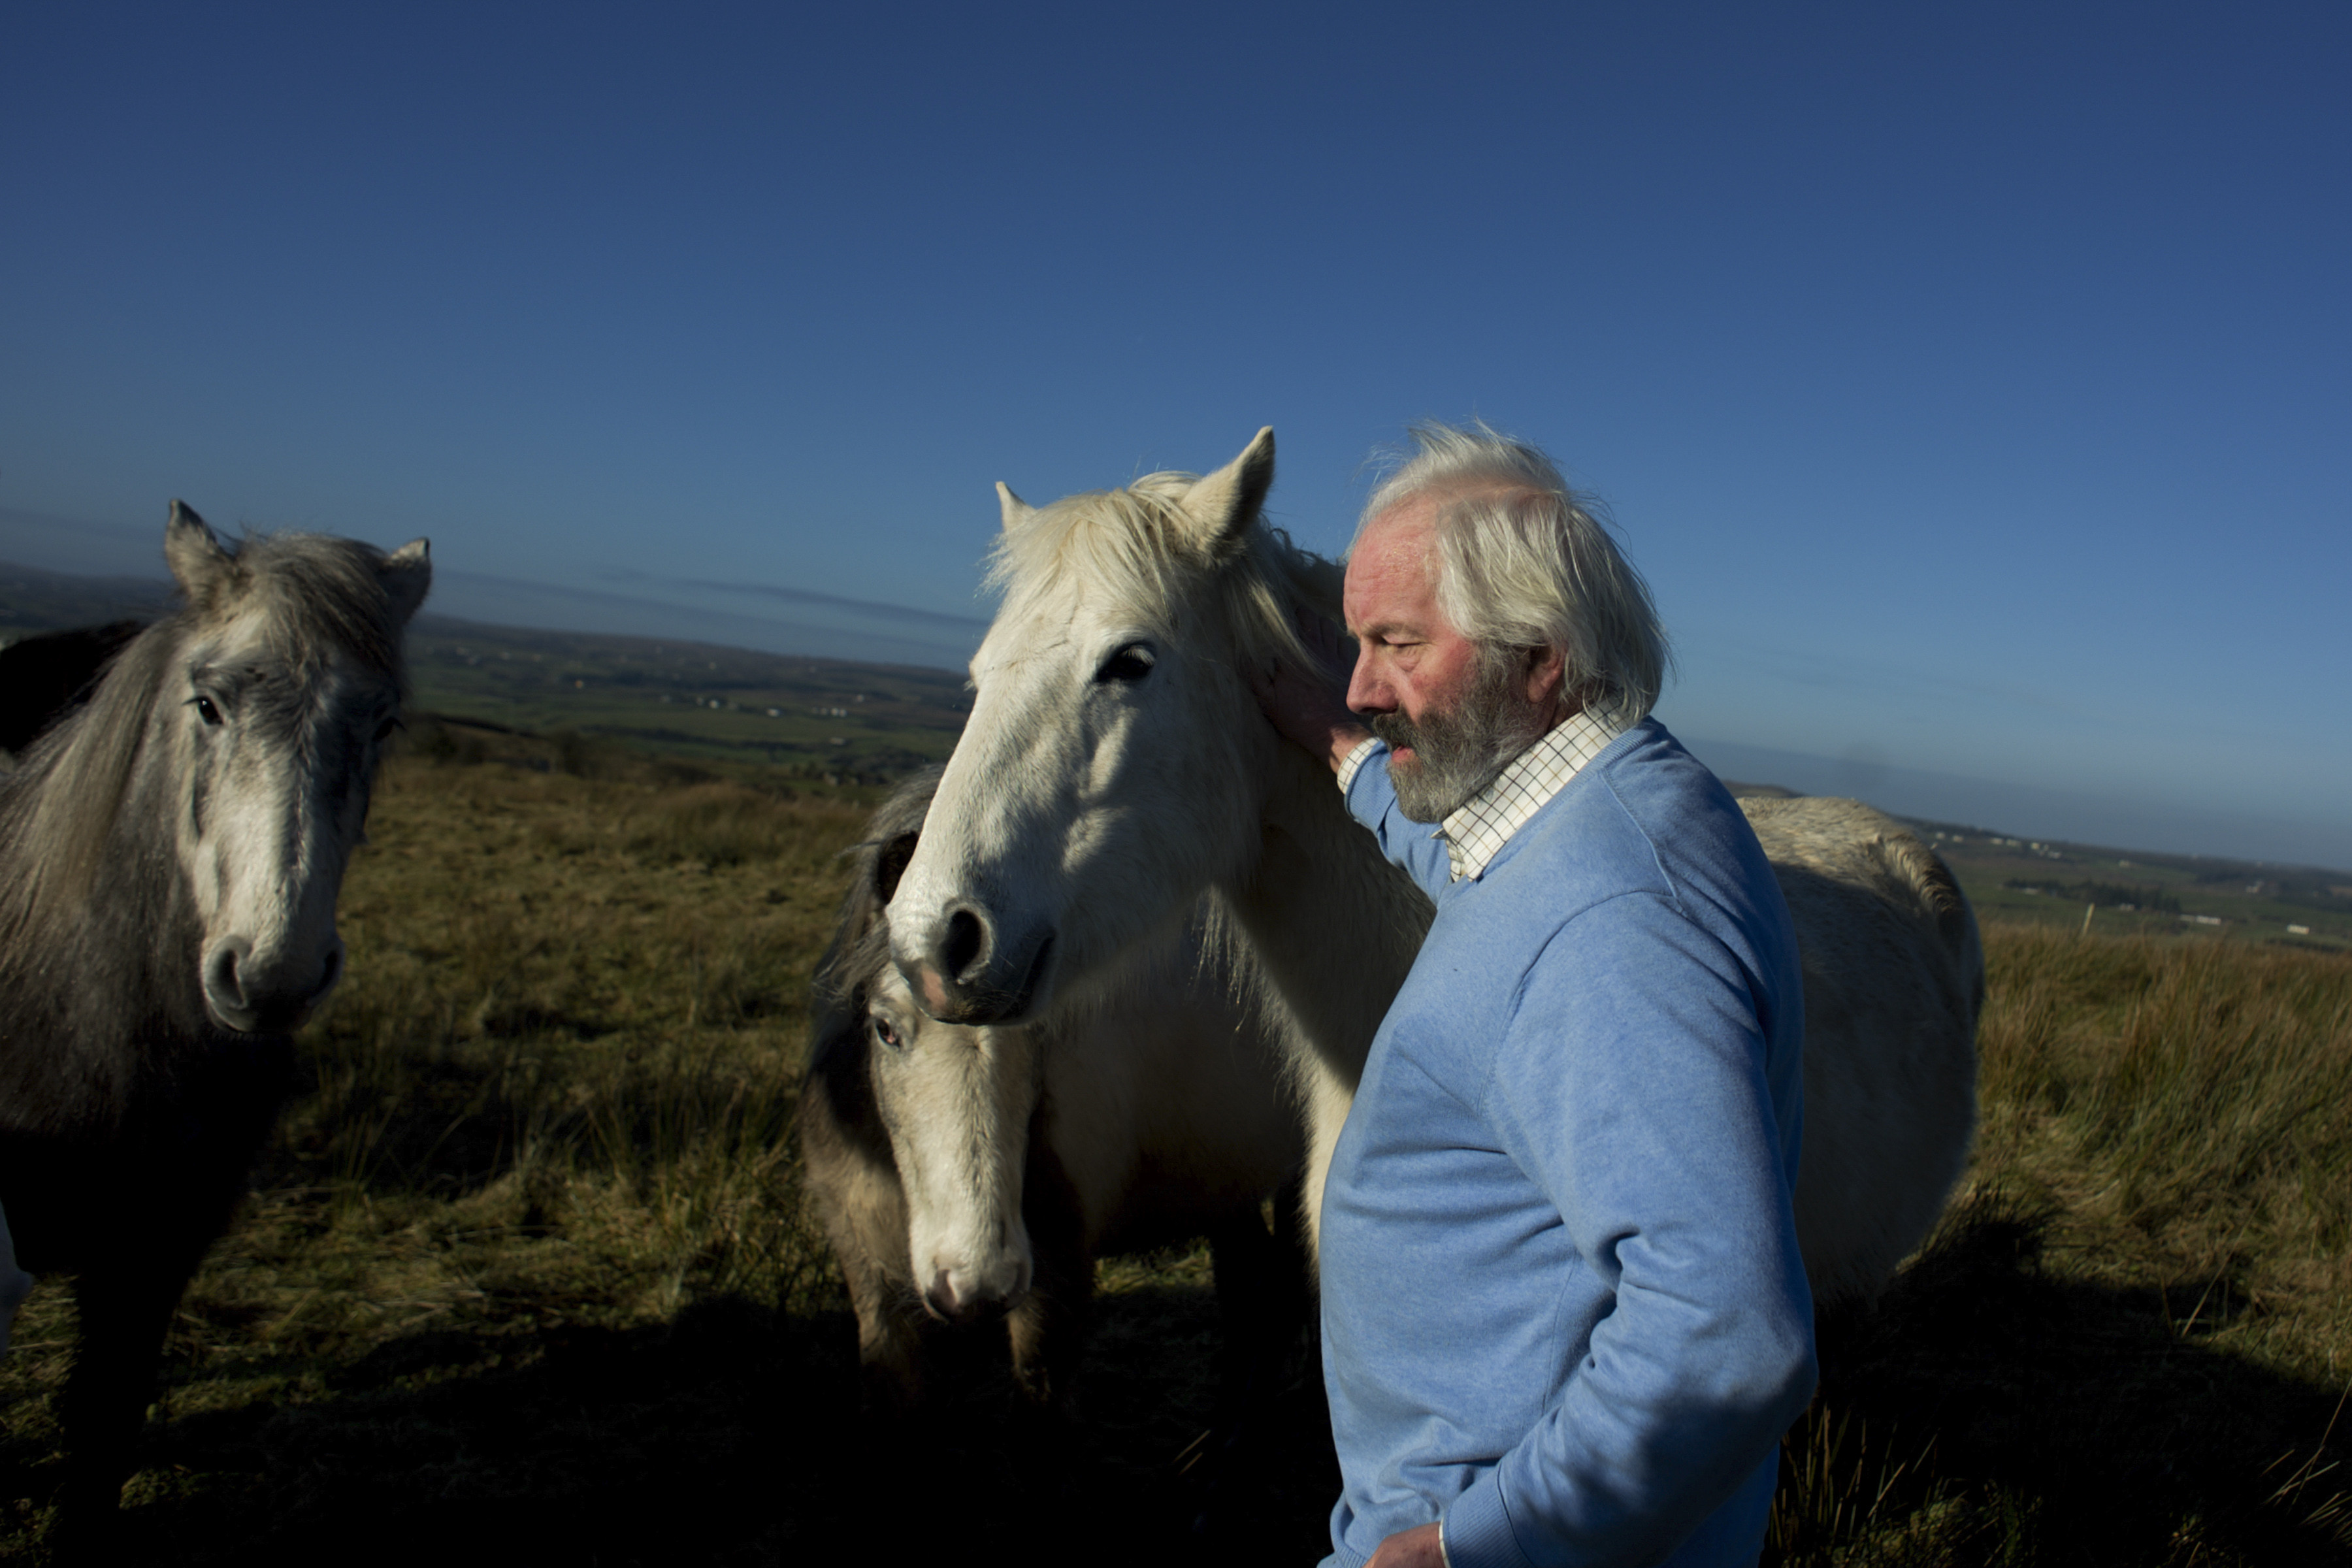 Willie Daly, one of Ireland?s last traditional matchmakers, pets some of his horses in a field close to his farmhouse in Ennistymon, Ireland.